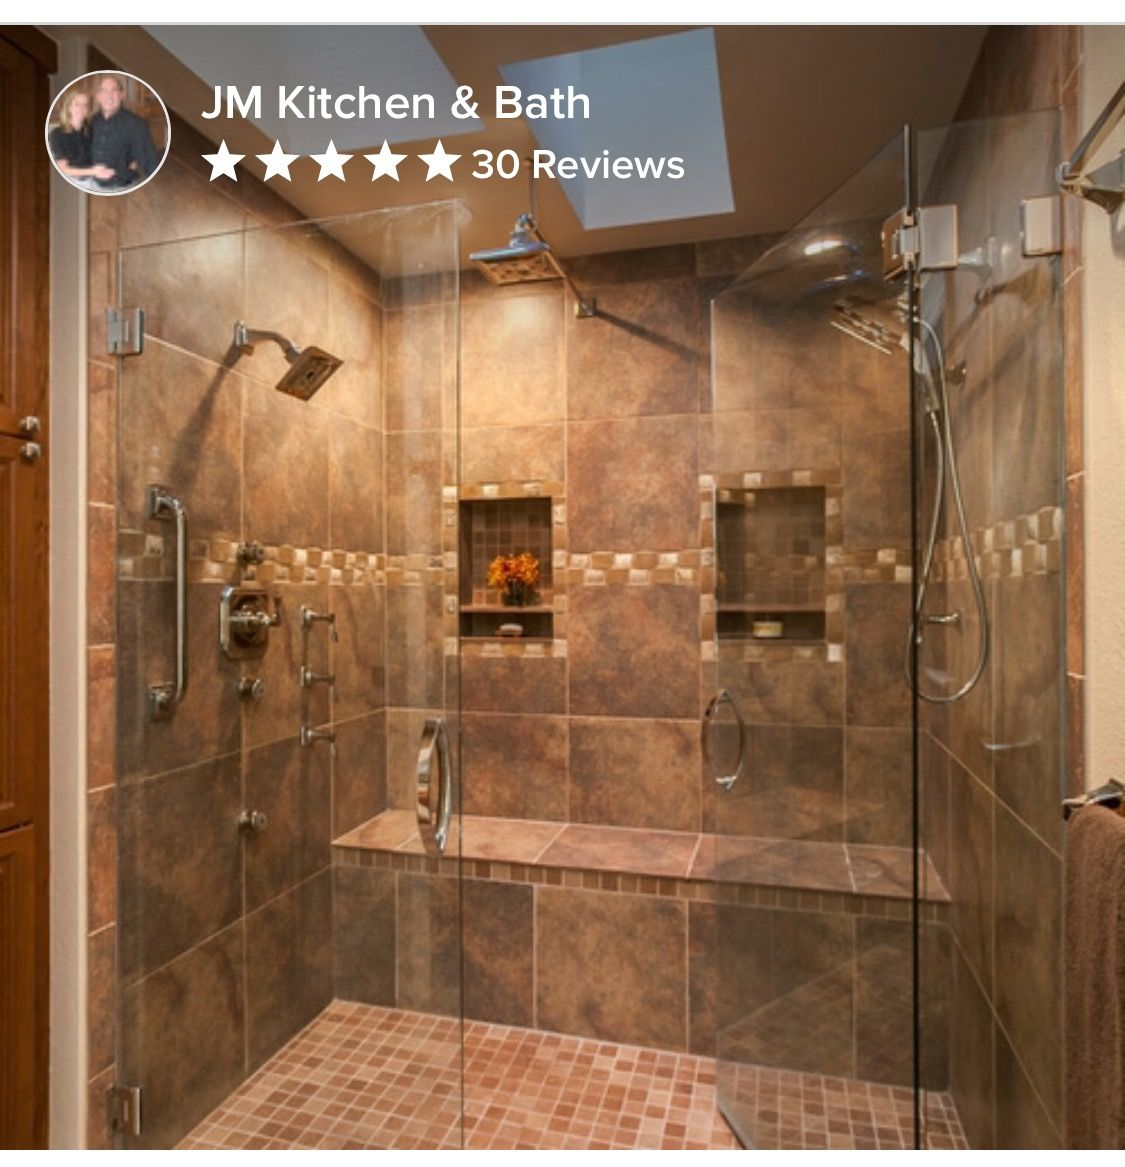 Large Master Bathroom Shower With Possibly 2 Shower Heads With